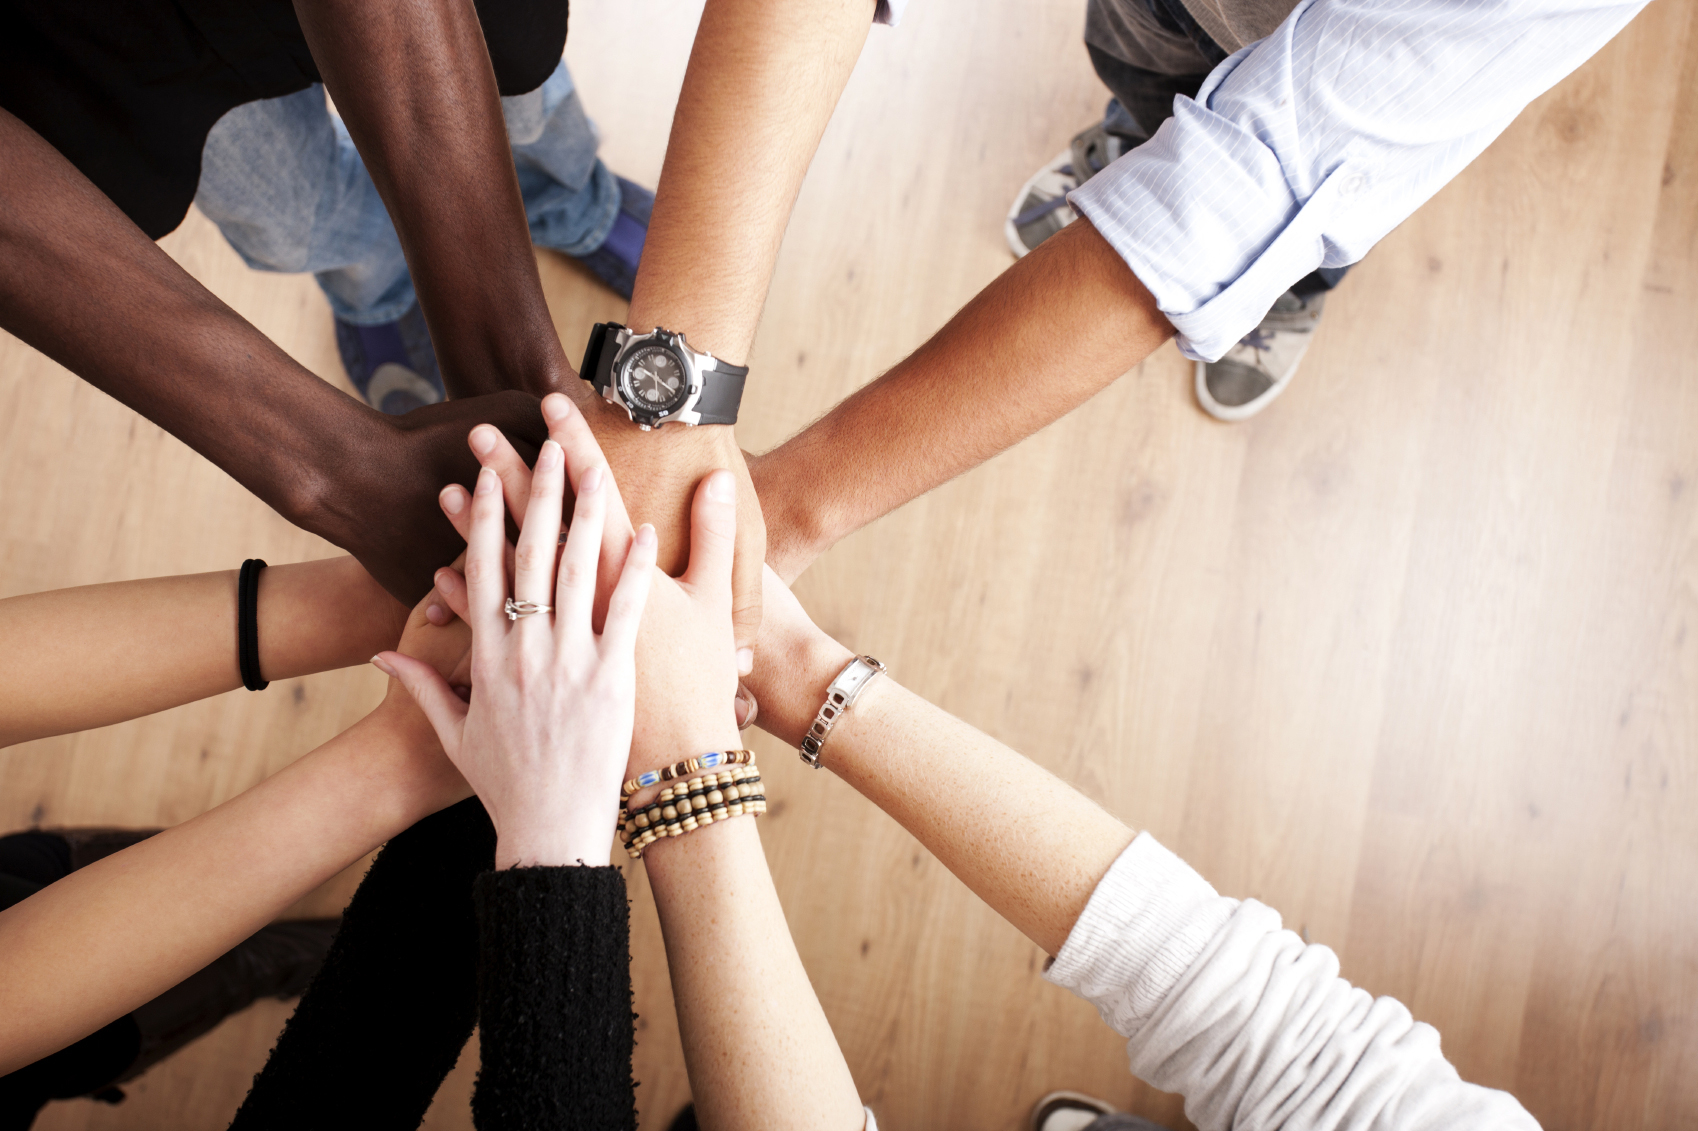 Connected & Knowledgeable - We at Second2None are outward facing and believe in working with other groups (e.g. National Governors Association) and authorities to strengthen the governing body with links to NLGs and experts in governance who can assist.